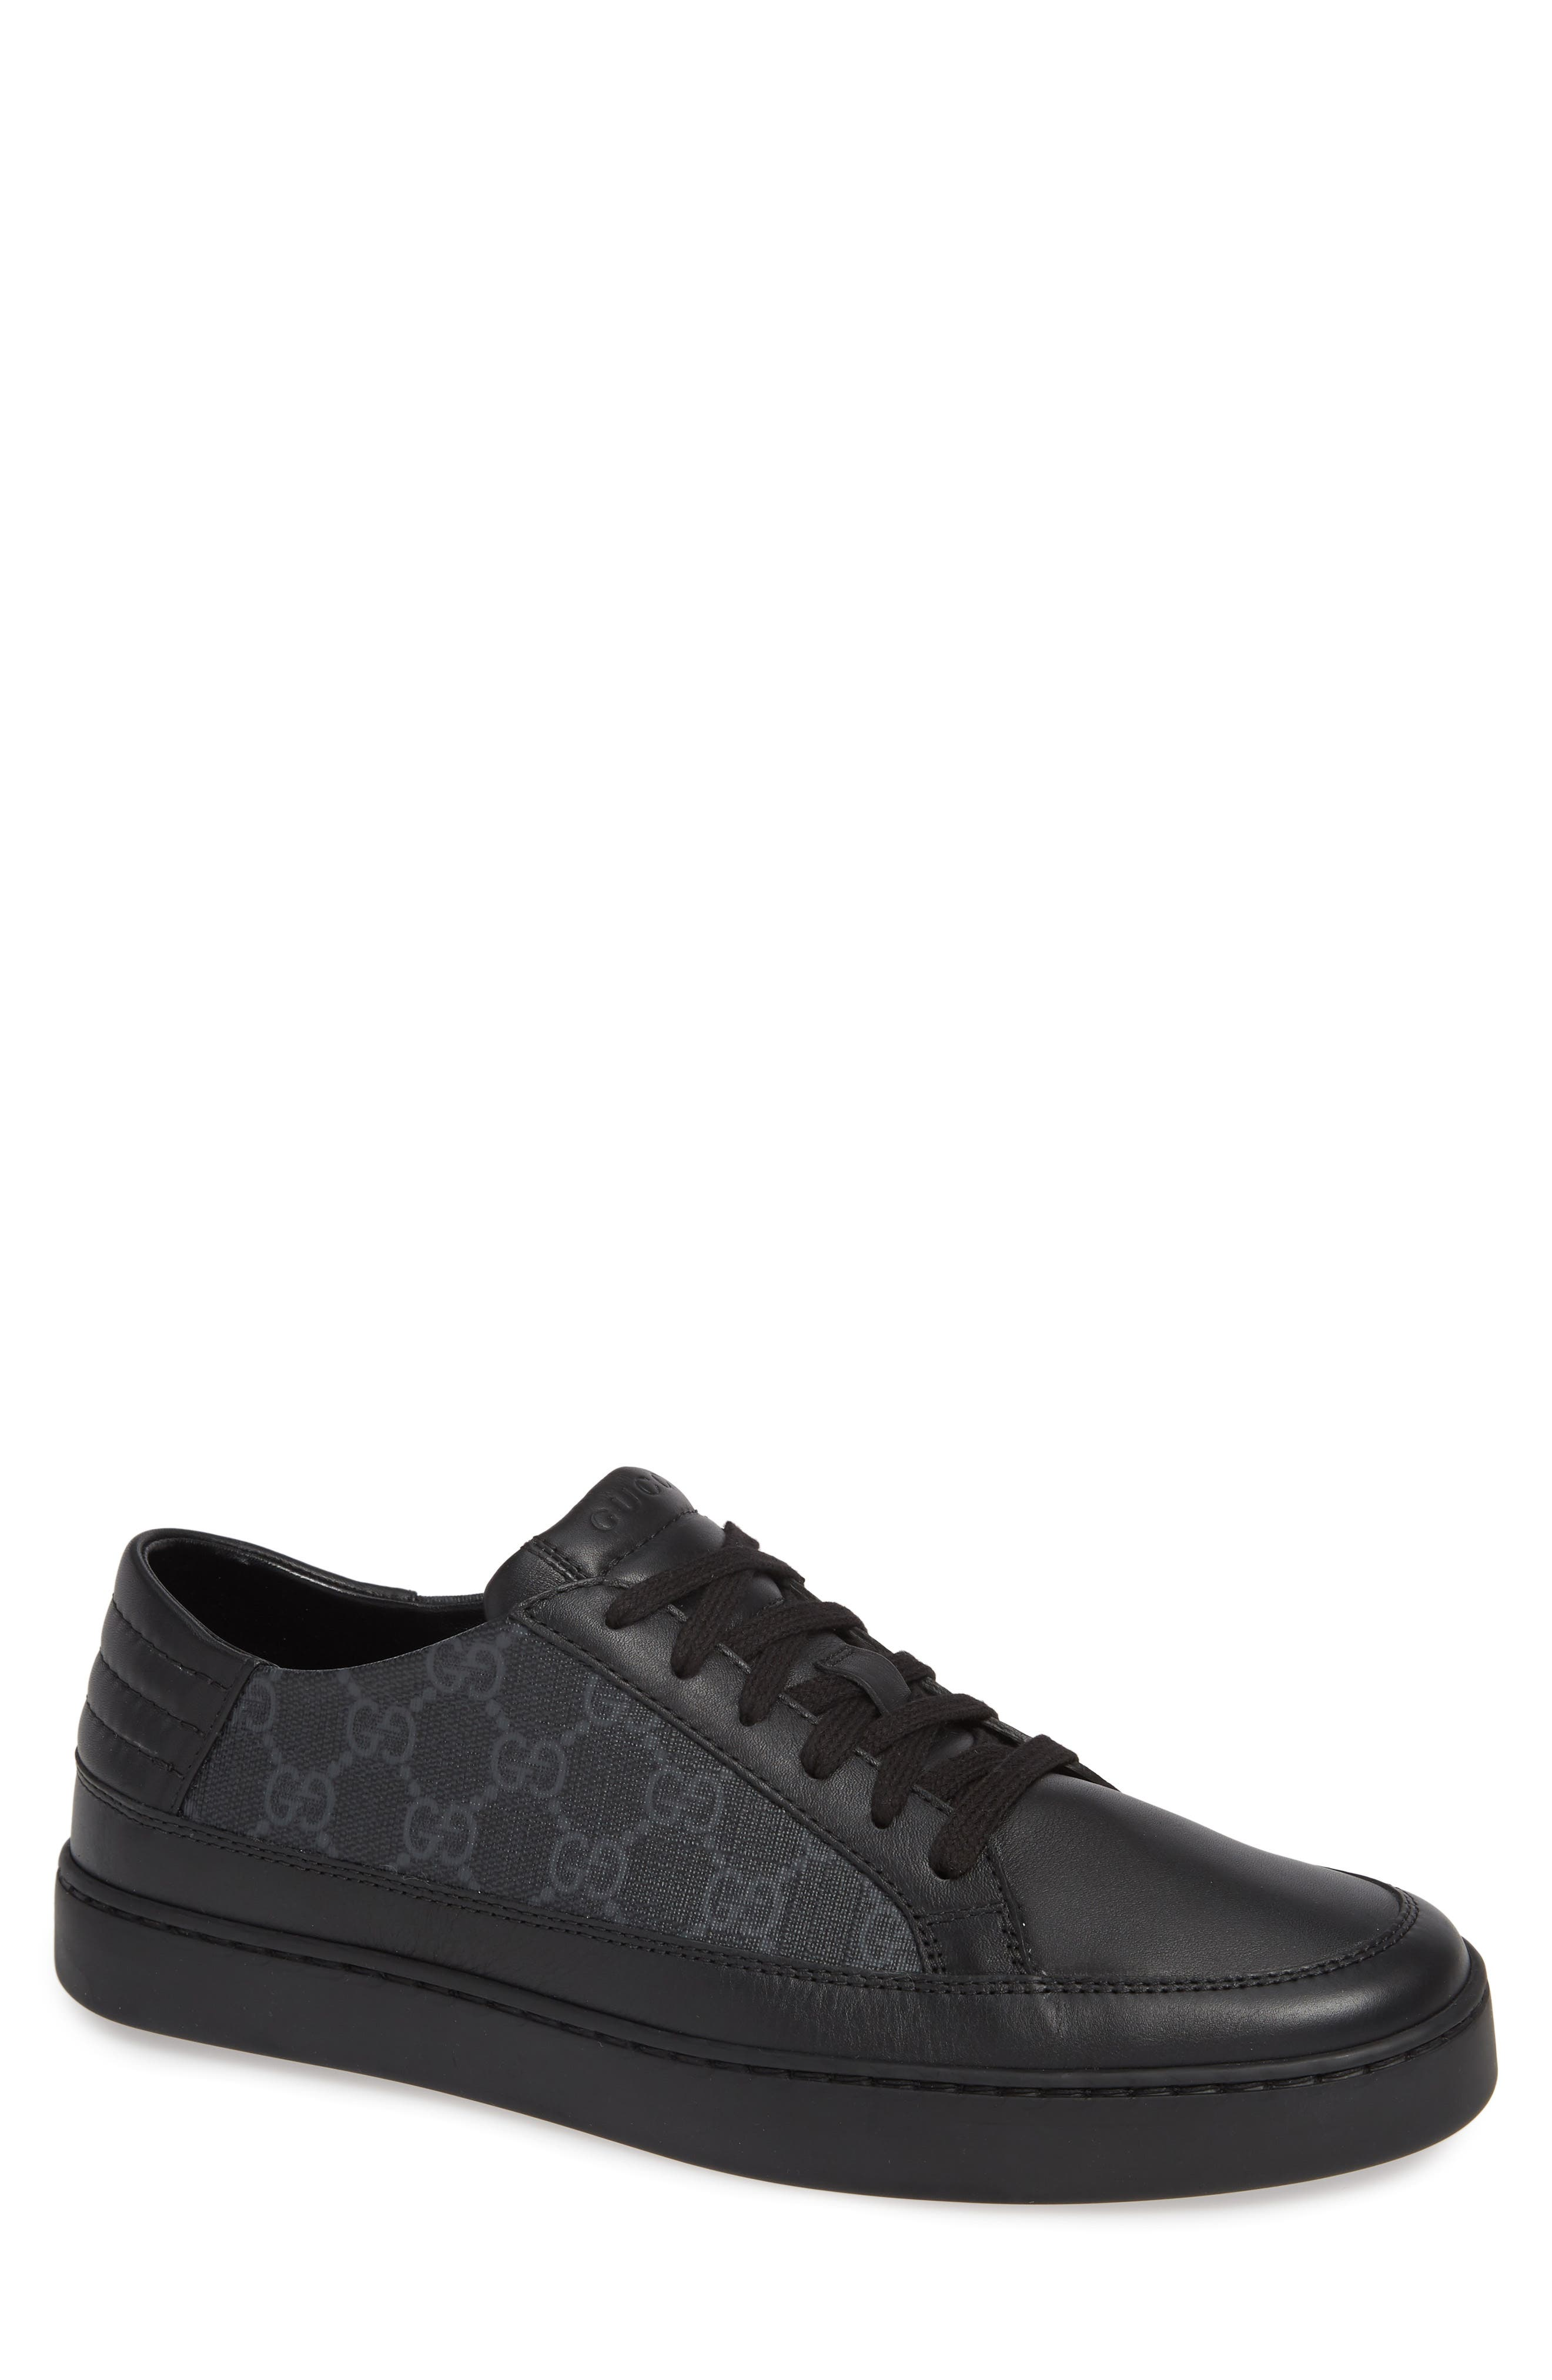 GUCCI 'Common' Low-Top Sneaker, Main, color, NERO/ BLACK